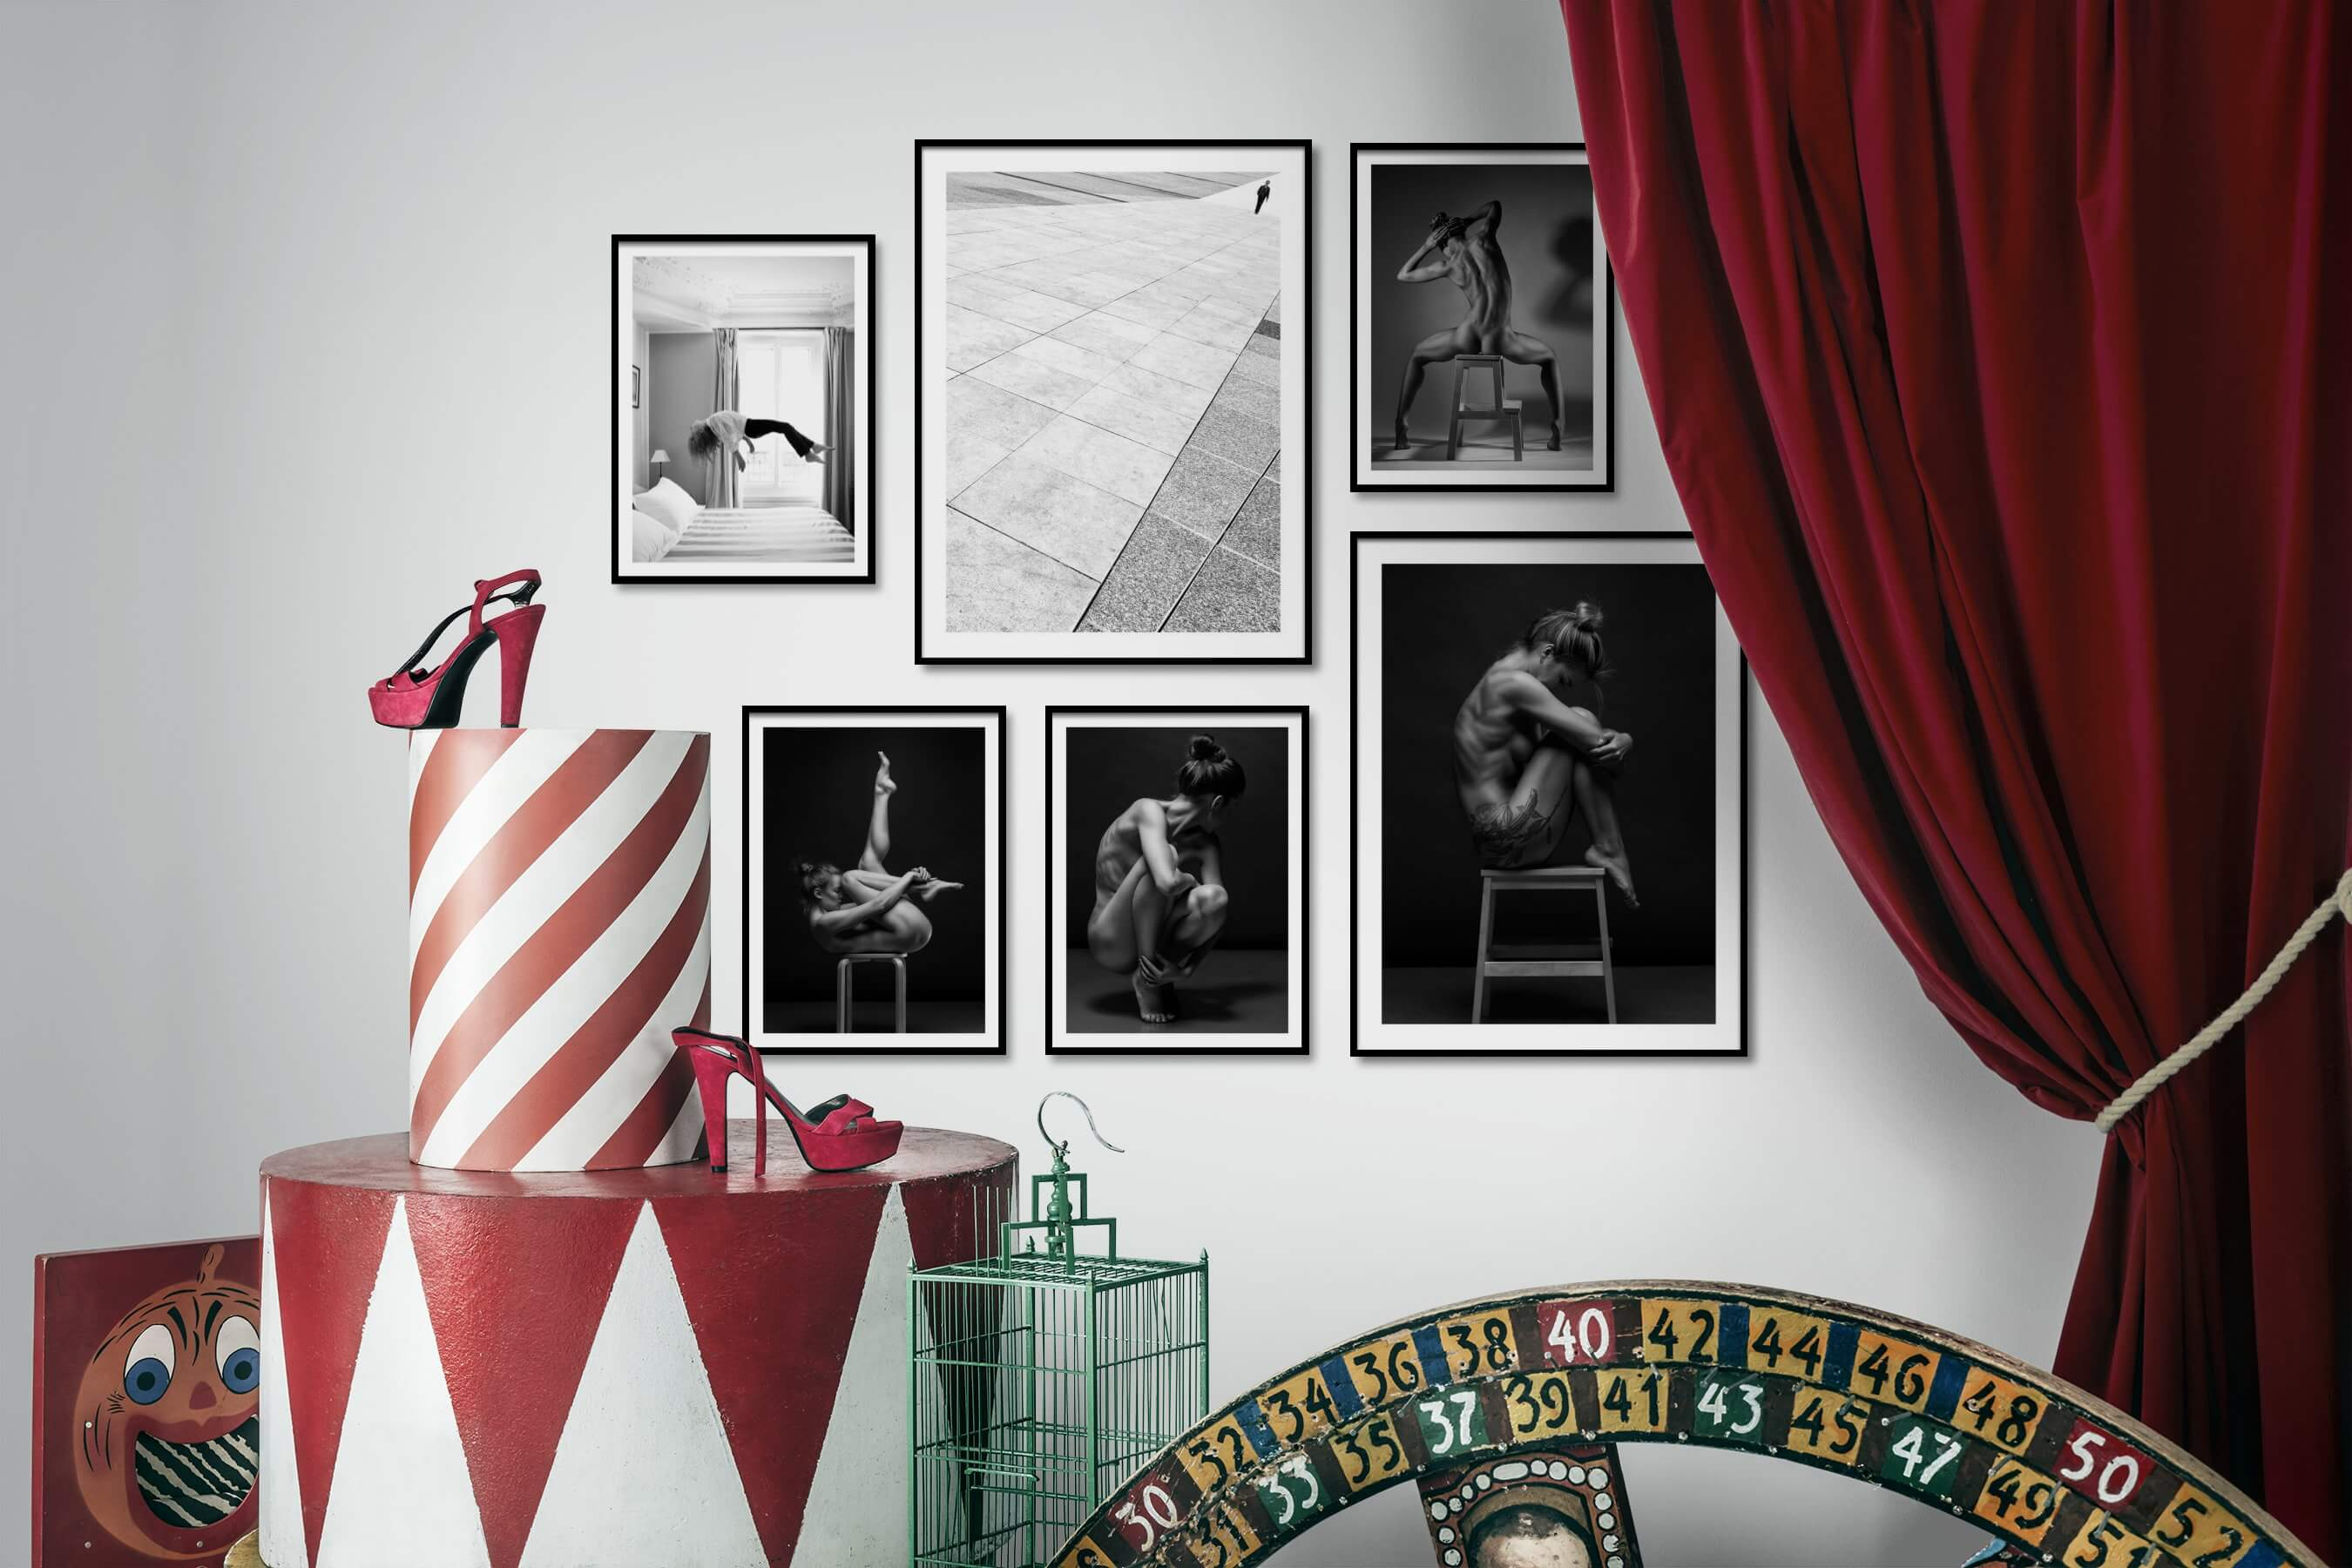 Gallery wall idea with six framed pictures arranged on a wall depicting Artsy, Black & White, For the Minimalist, and Fashion & Beauty